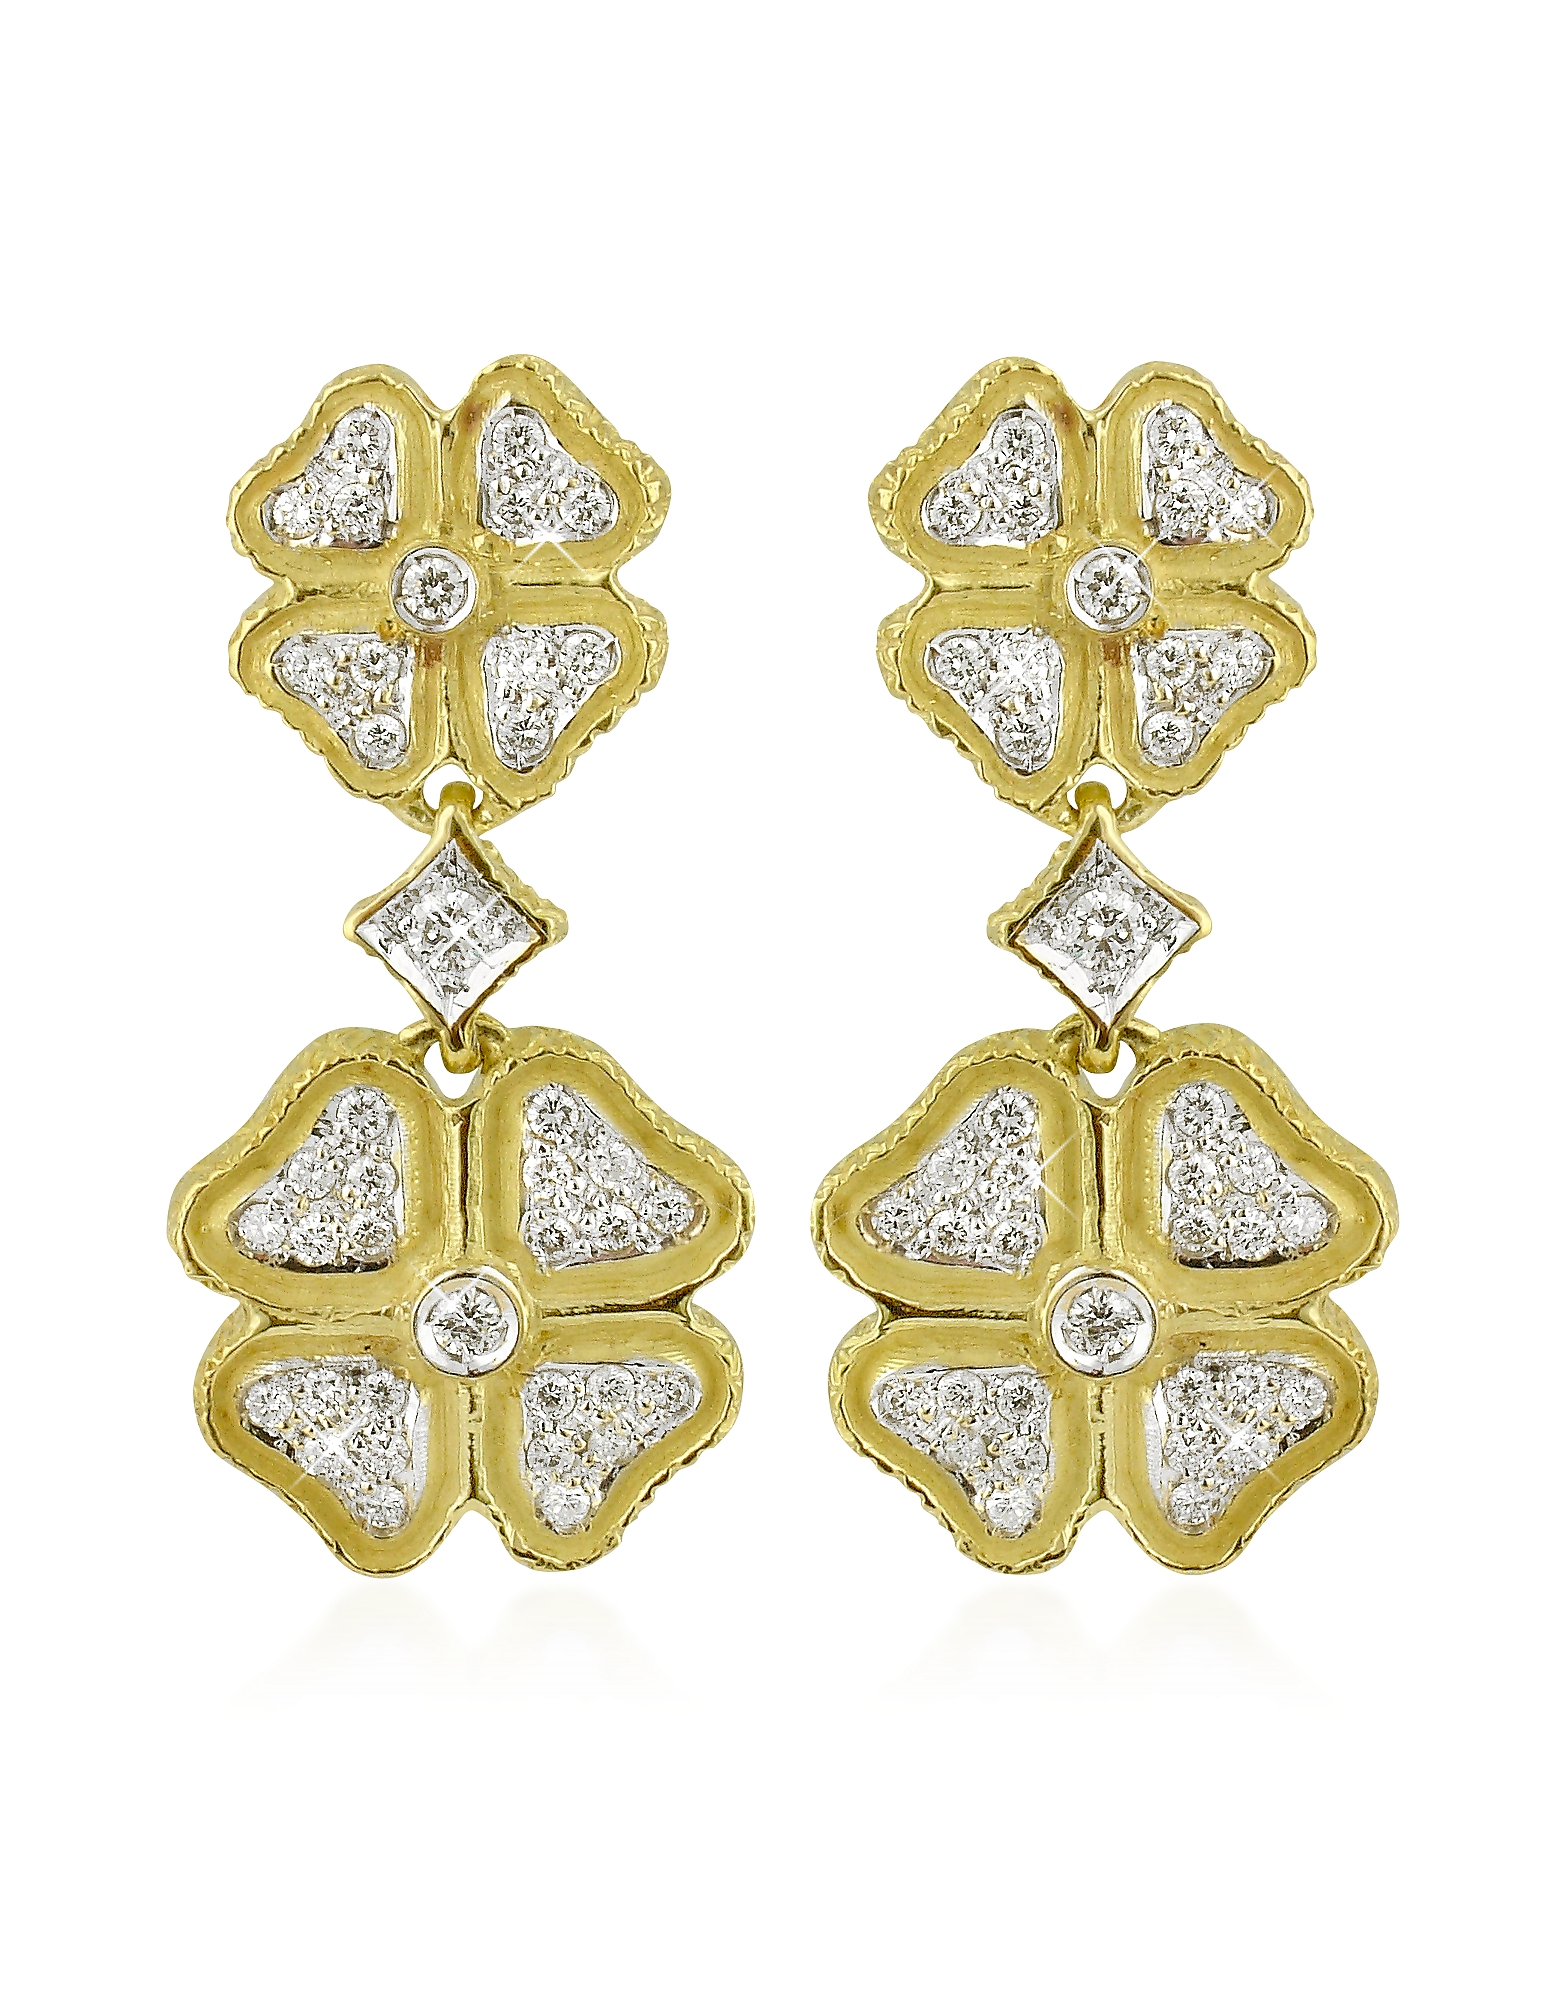 Torrini Designer Earrings, Quadrifoglio Diamond Four-Leaf Clover 18K Gold Earrings